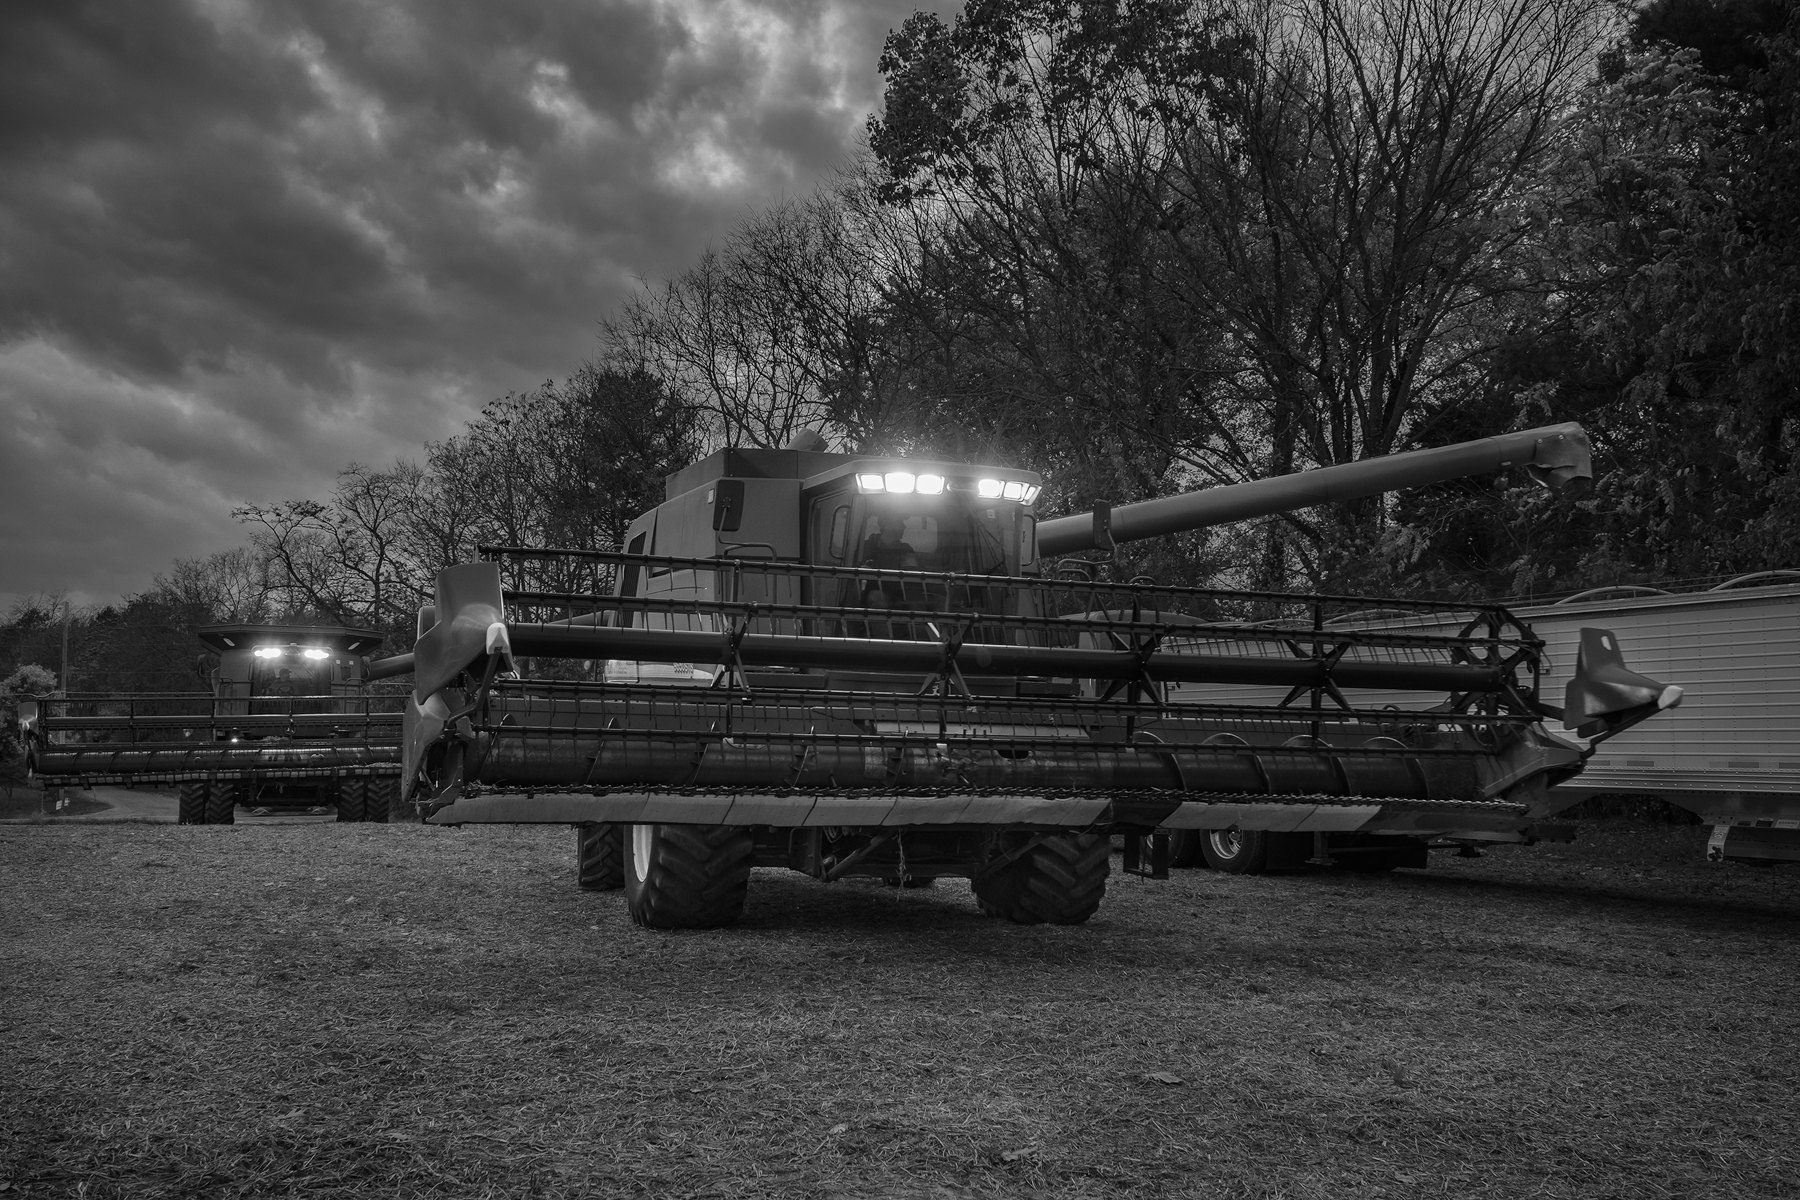 As night descends Aden and Steve finish unloading soybeans from another pass in the field.Fuji X-T2 and a Fujinon XF16-55mm f2.8 WR at 16mm. Image exposed at ISO 800 at f5.6 for 1/30 of a second.